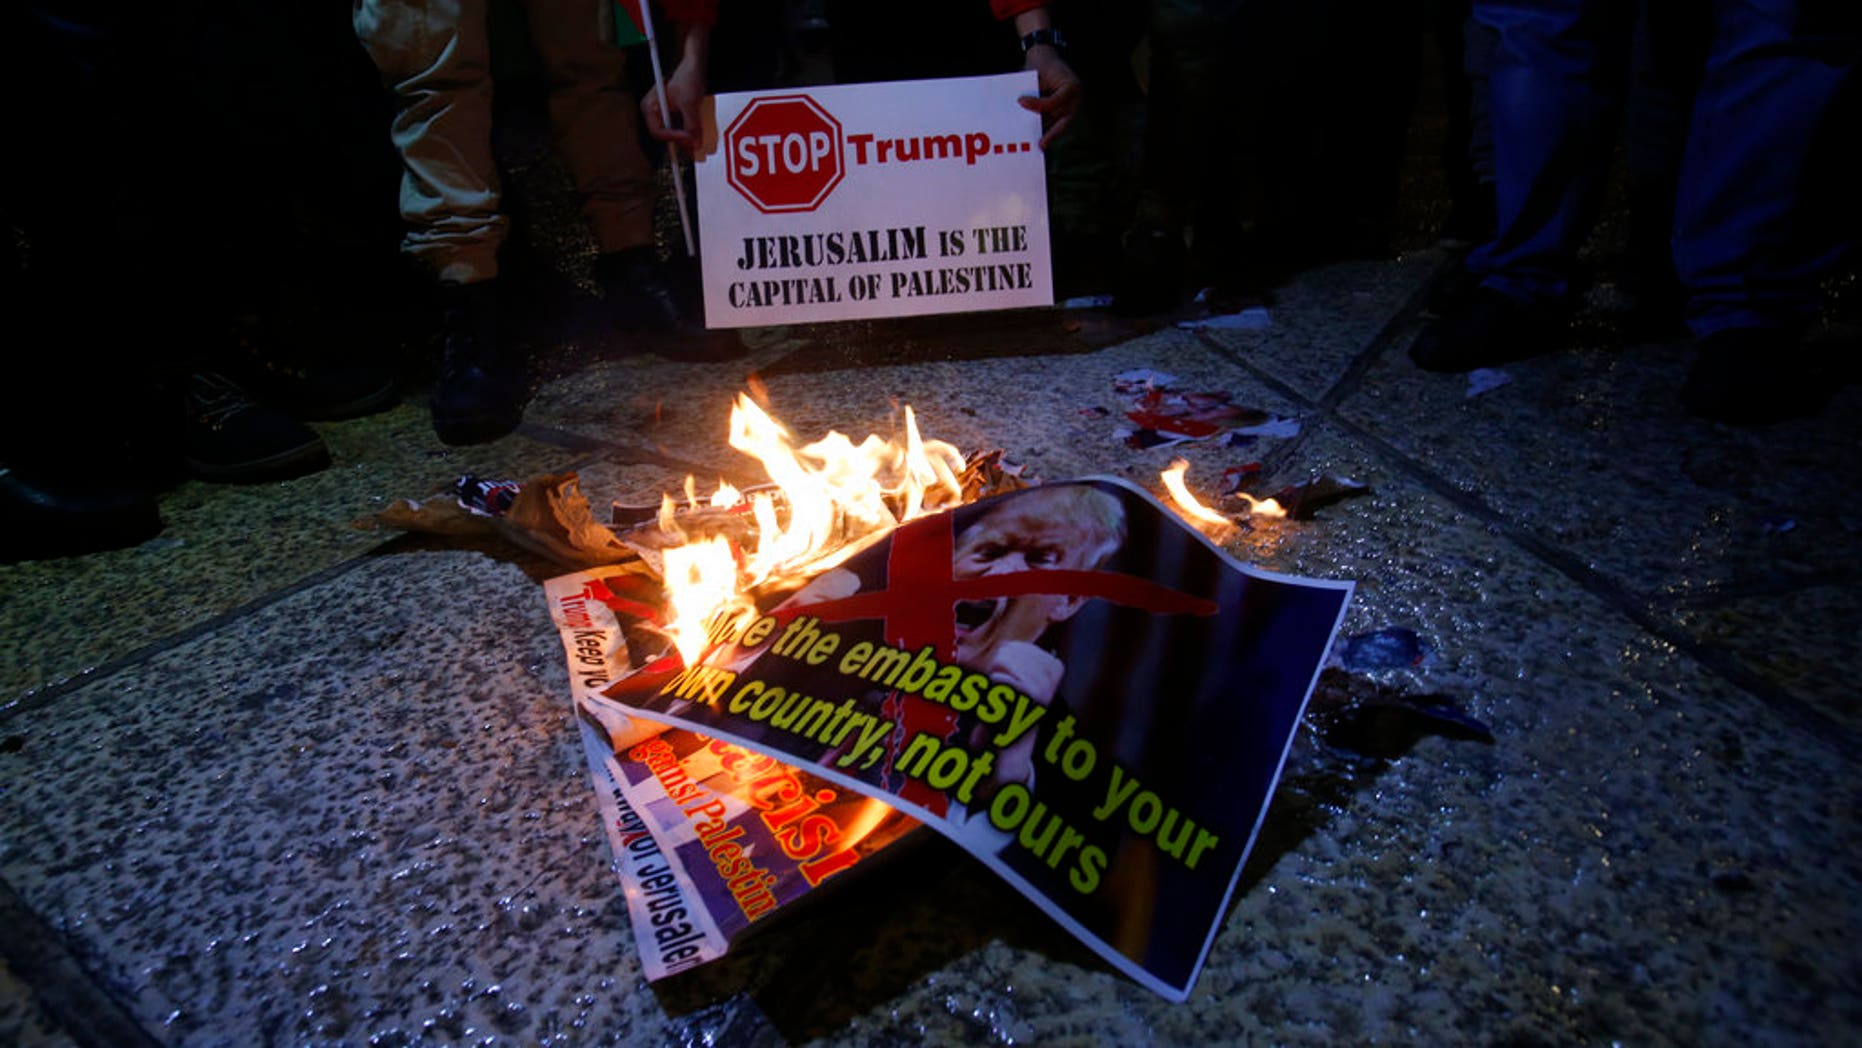 Palestinian burn a poster of the U.S. President Donald Trump during a protest in Bethlehem, West Bank, Wednesday, Dec. 6, 2017. Defying dire, worldwide warnings, President Donald Trump on Wednesday broke with decades of U.S. and international policy by recognizing Jerusalem as Israel's capital.(AP Photo/Nasser Shiyoukhi)